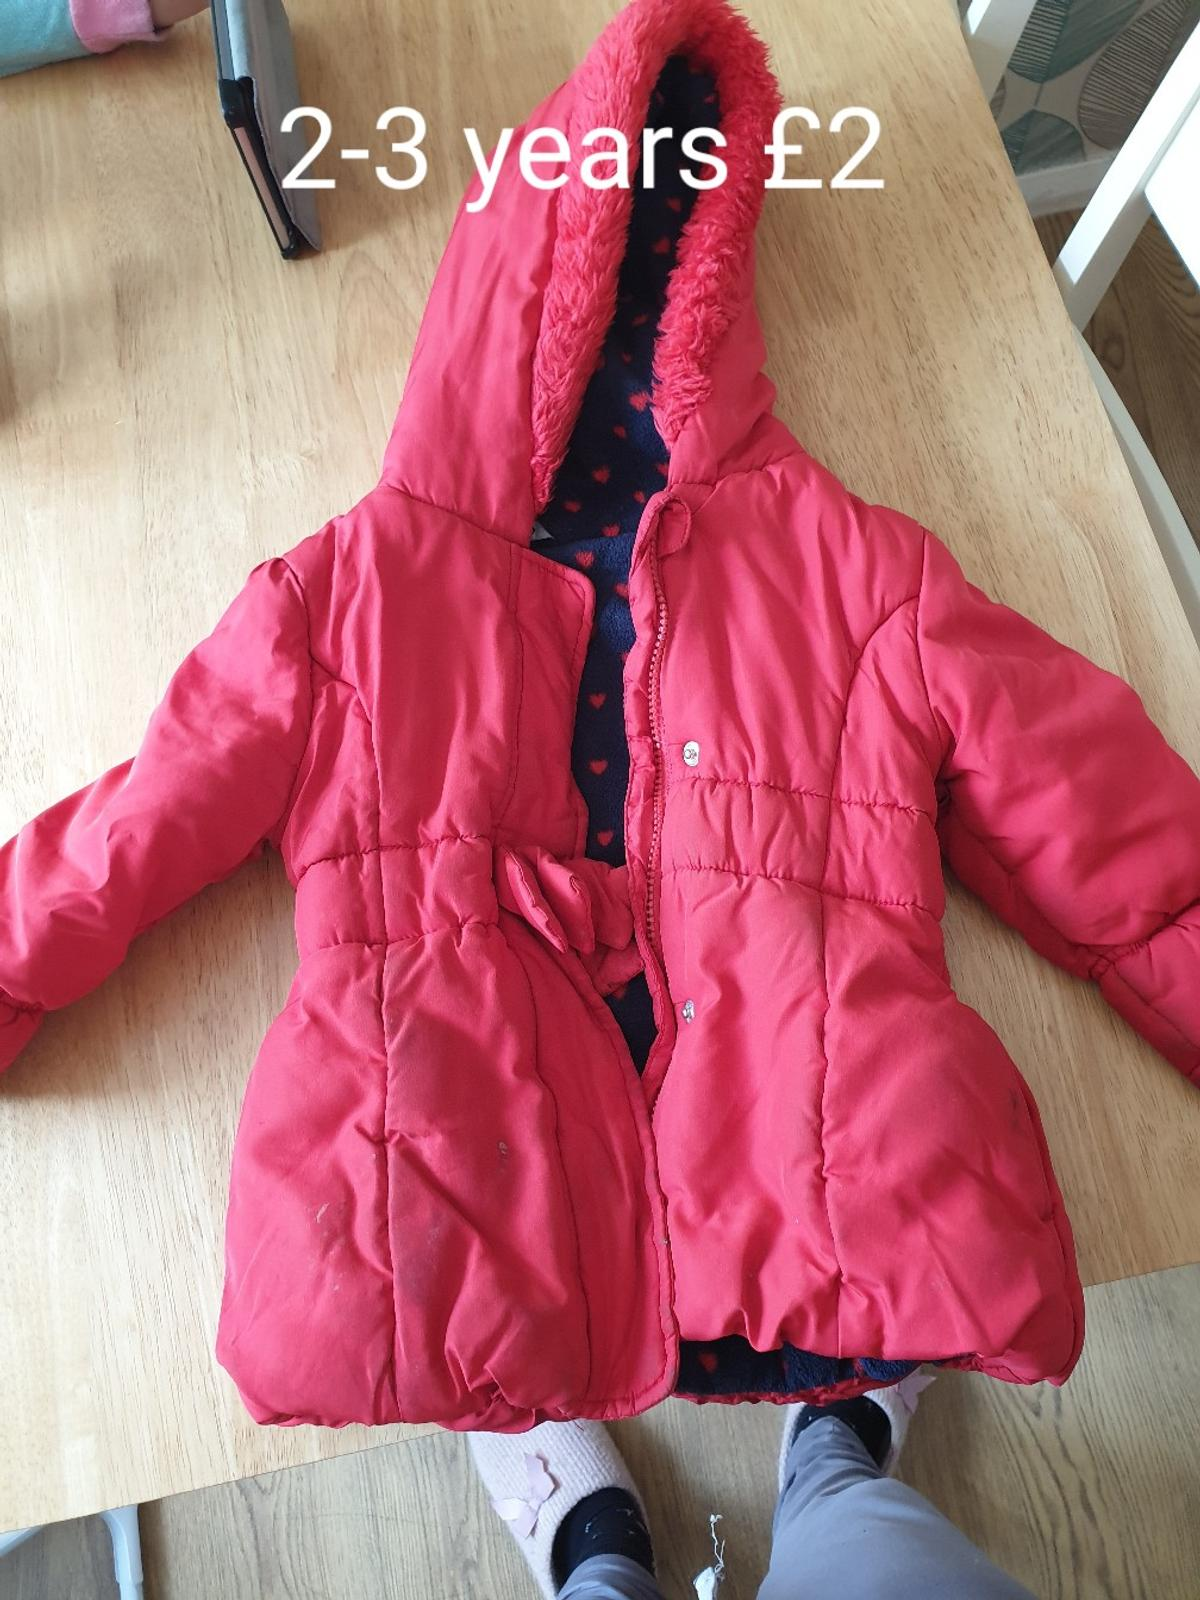 coats all brilliant condition collection only kidderminster DY11 area